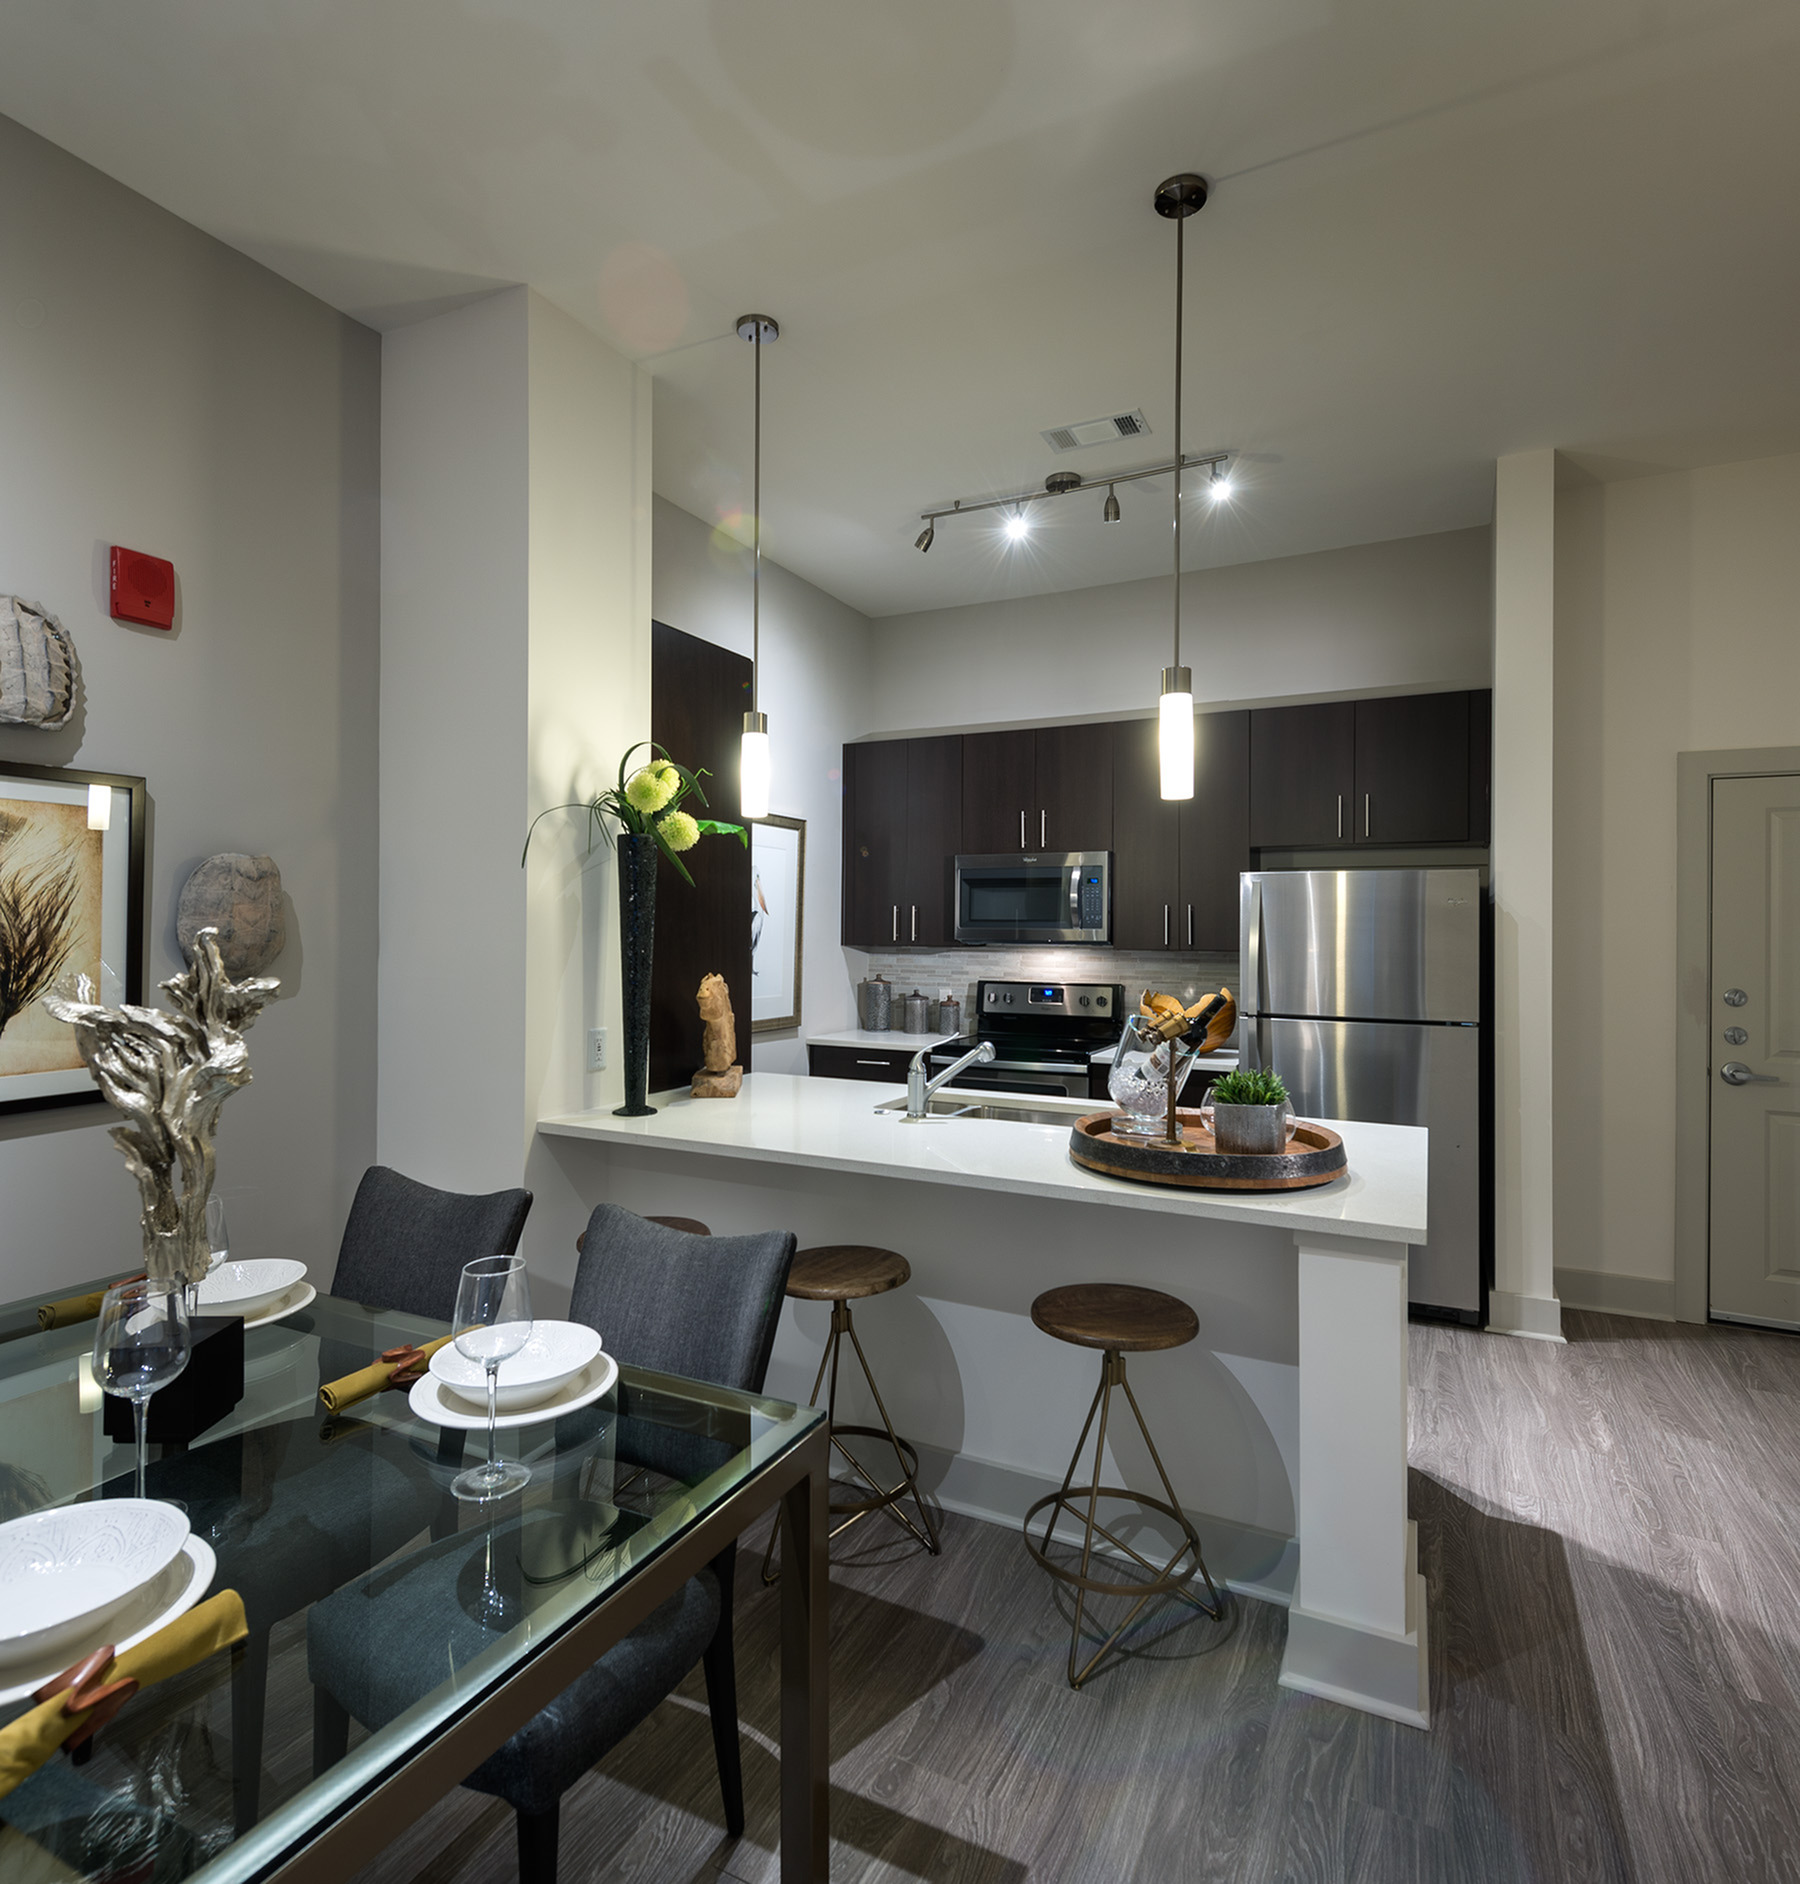 Image of Gourmet kitchens equipped with stainless steel appliances for Hanover Foxborough